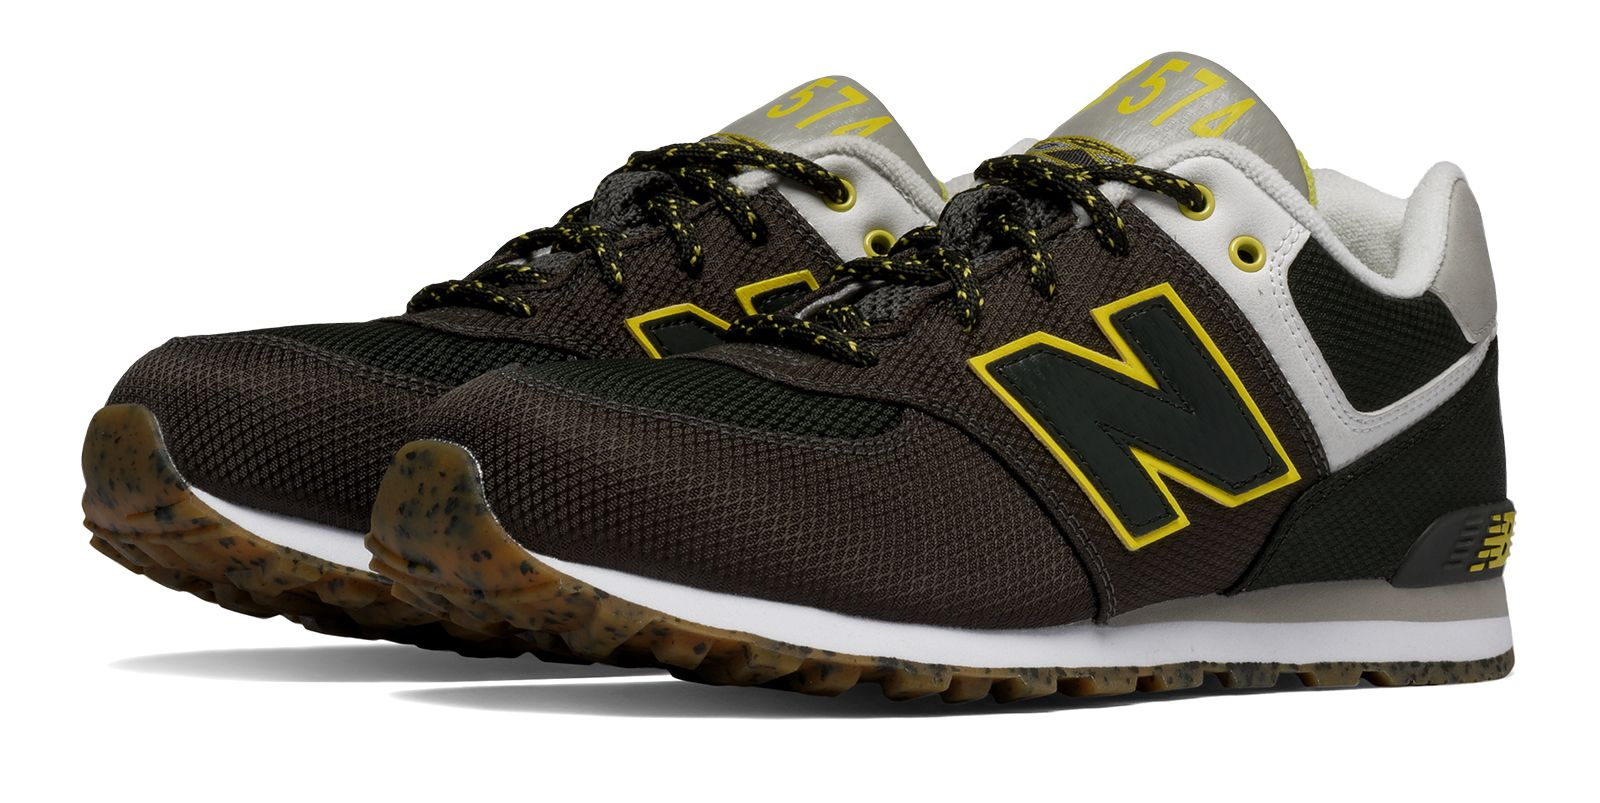 New Balance : 574 Weekend Expedition : Unisex Boys' Outlet : KL574E8G